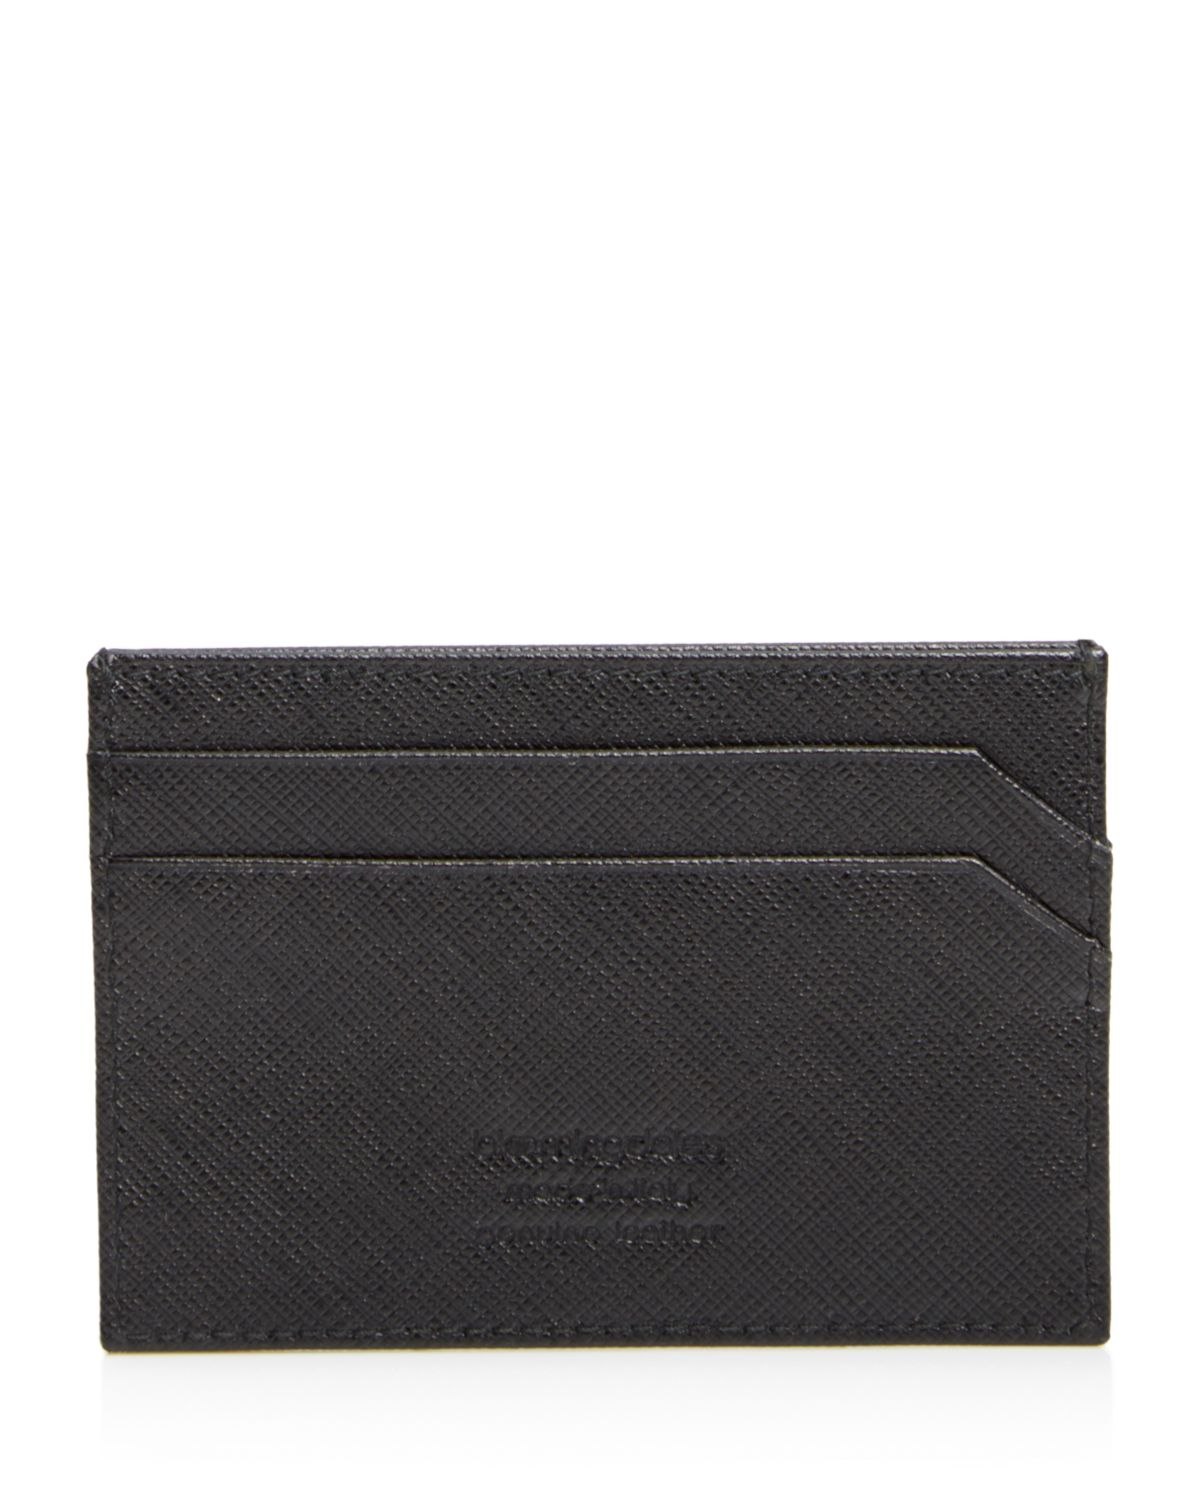 Saffiano Card Case   100 Percents Exclusive by The Men's Store At Bloomingdale's